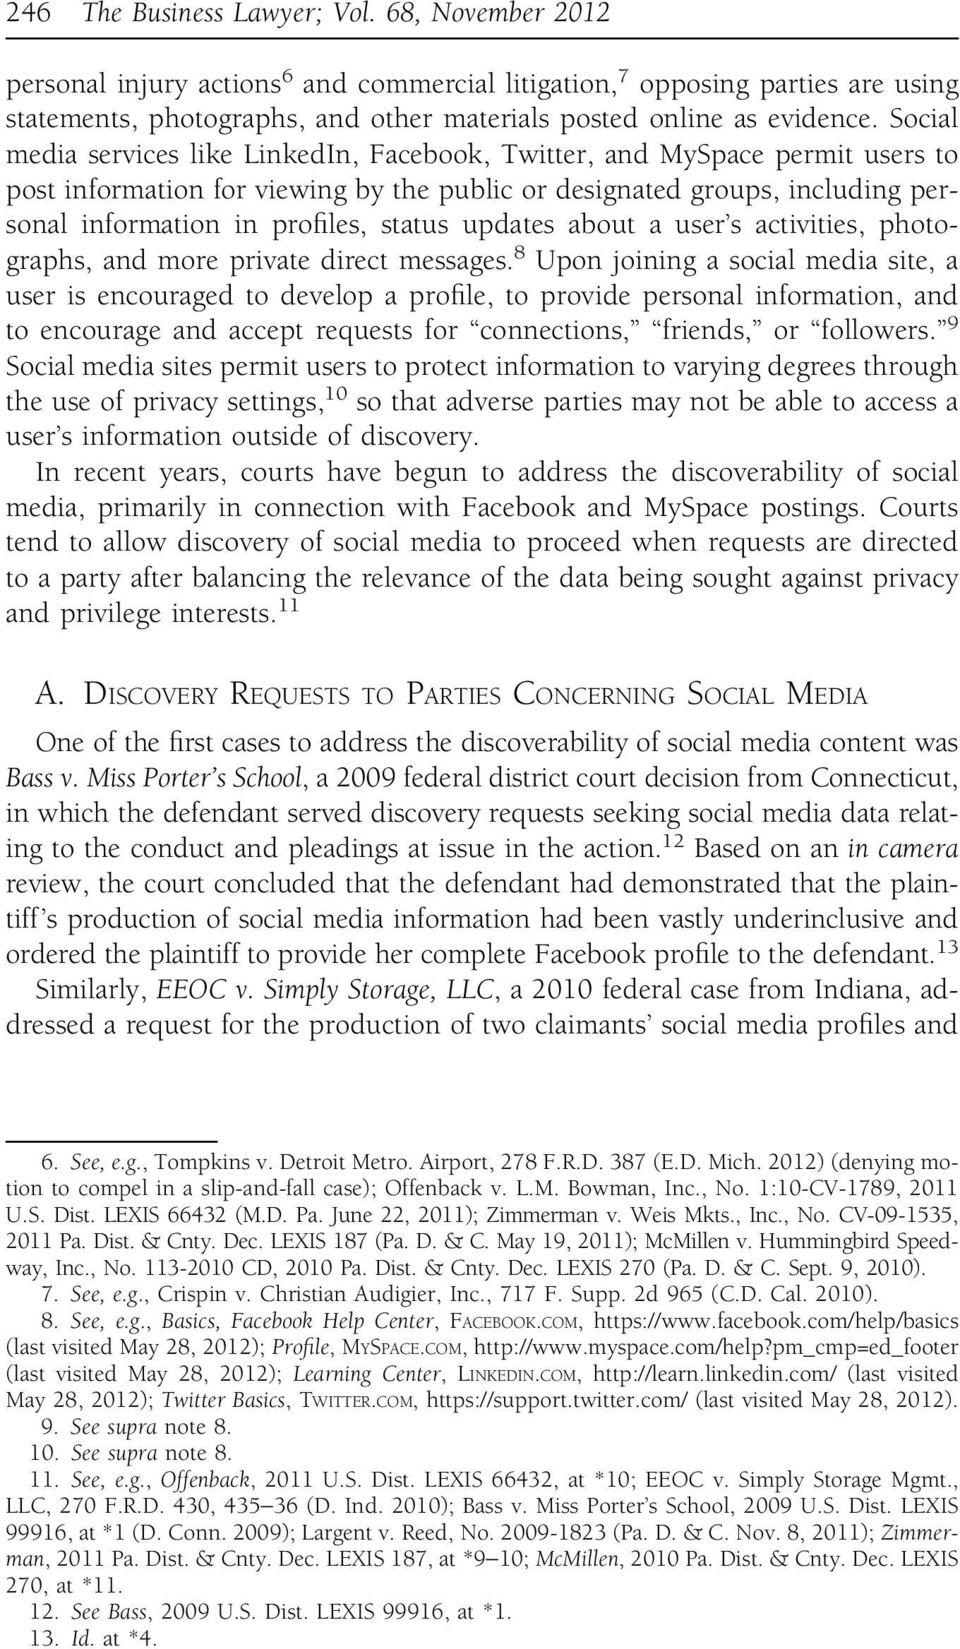 Social media services like LinkedIn, Facebook, Twitter, and MySpace permit users to post information for viewing by the public or designated groups, including personal information in profiles, status